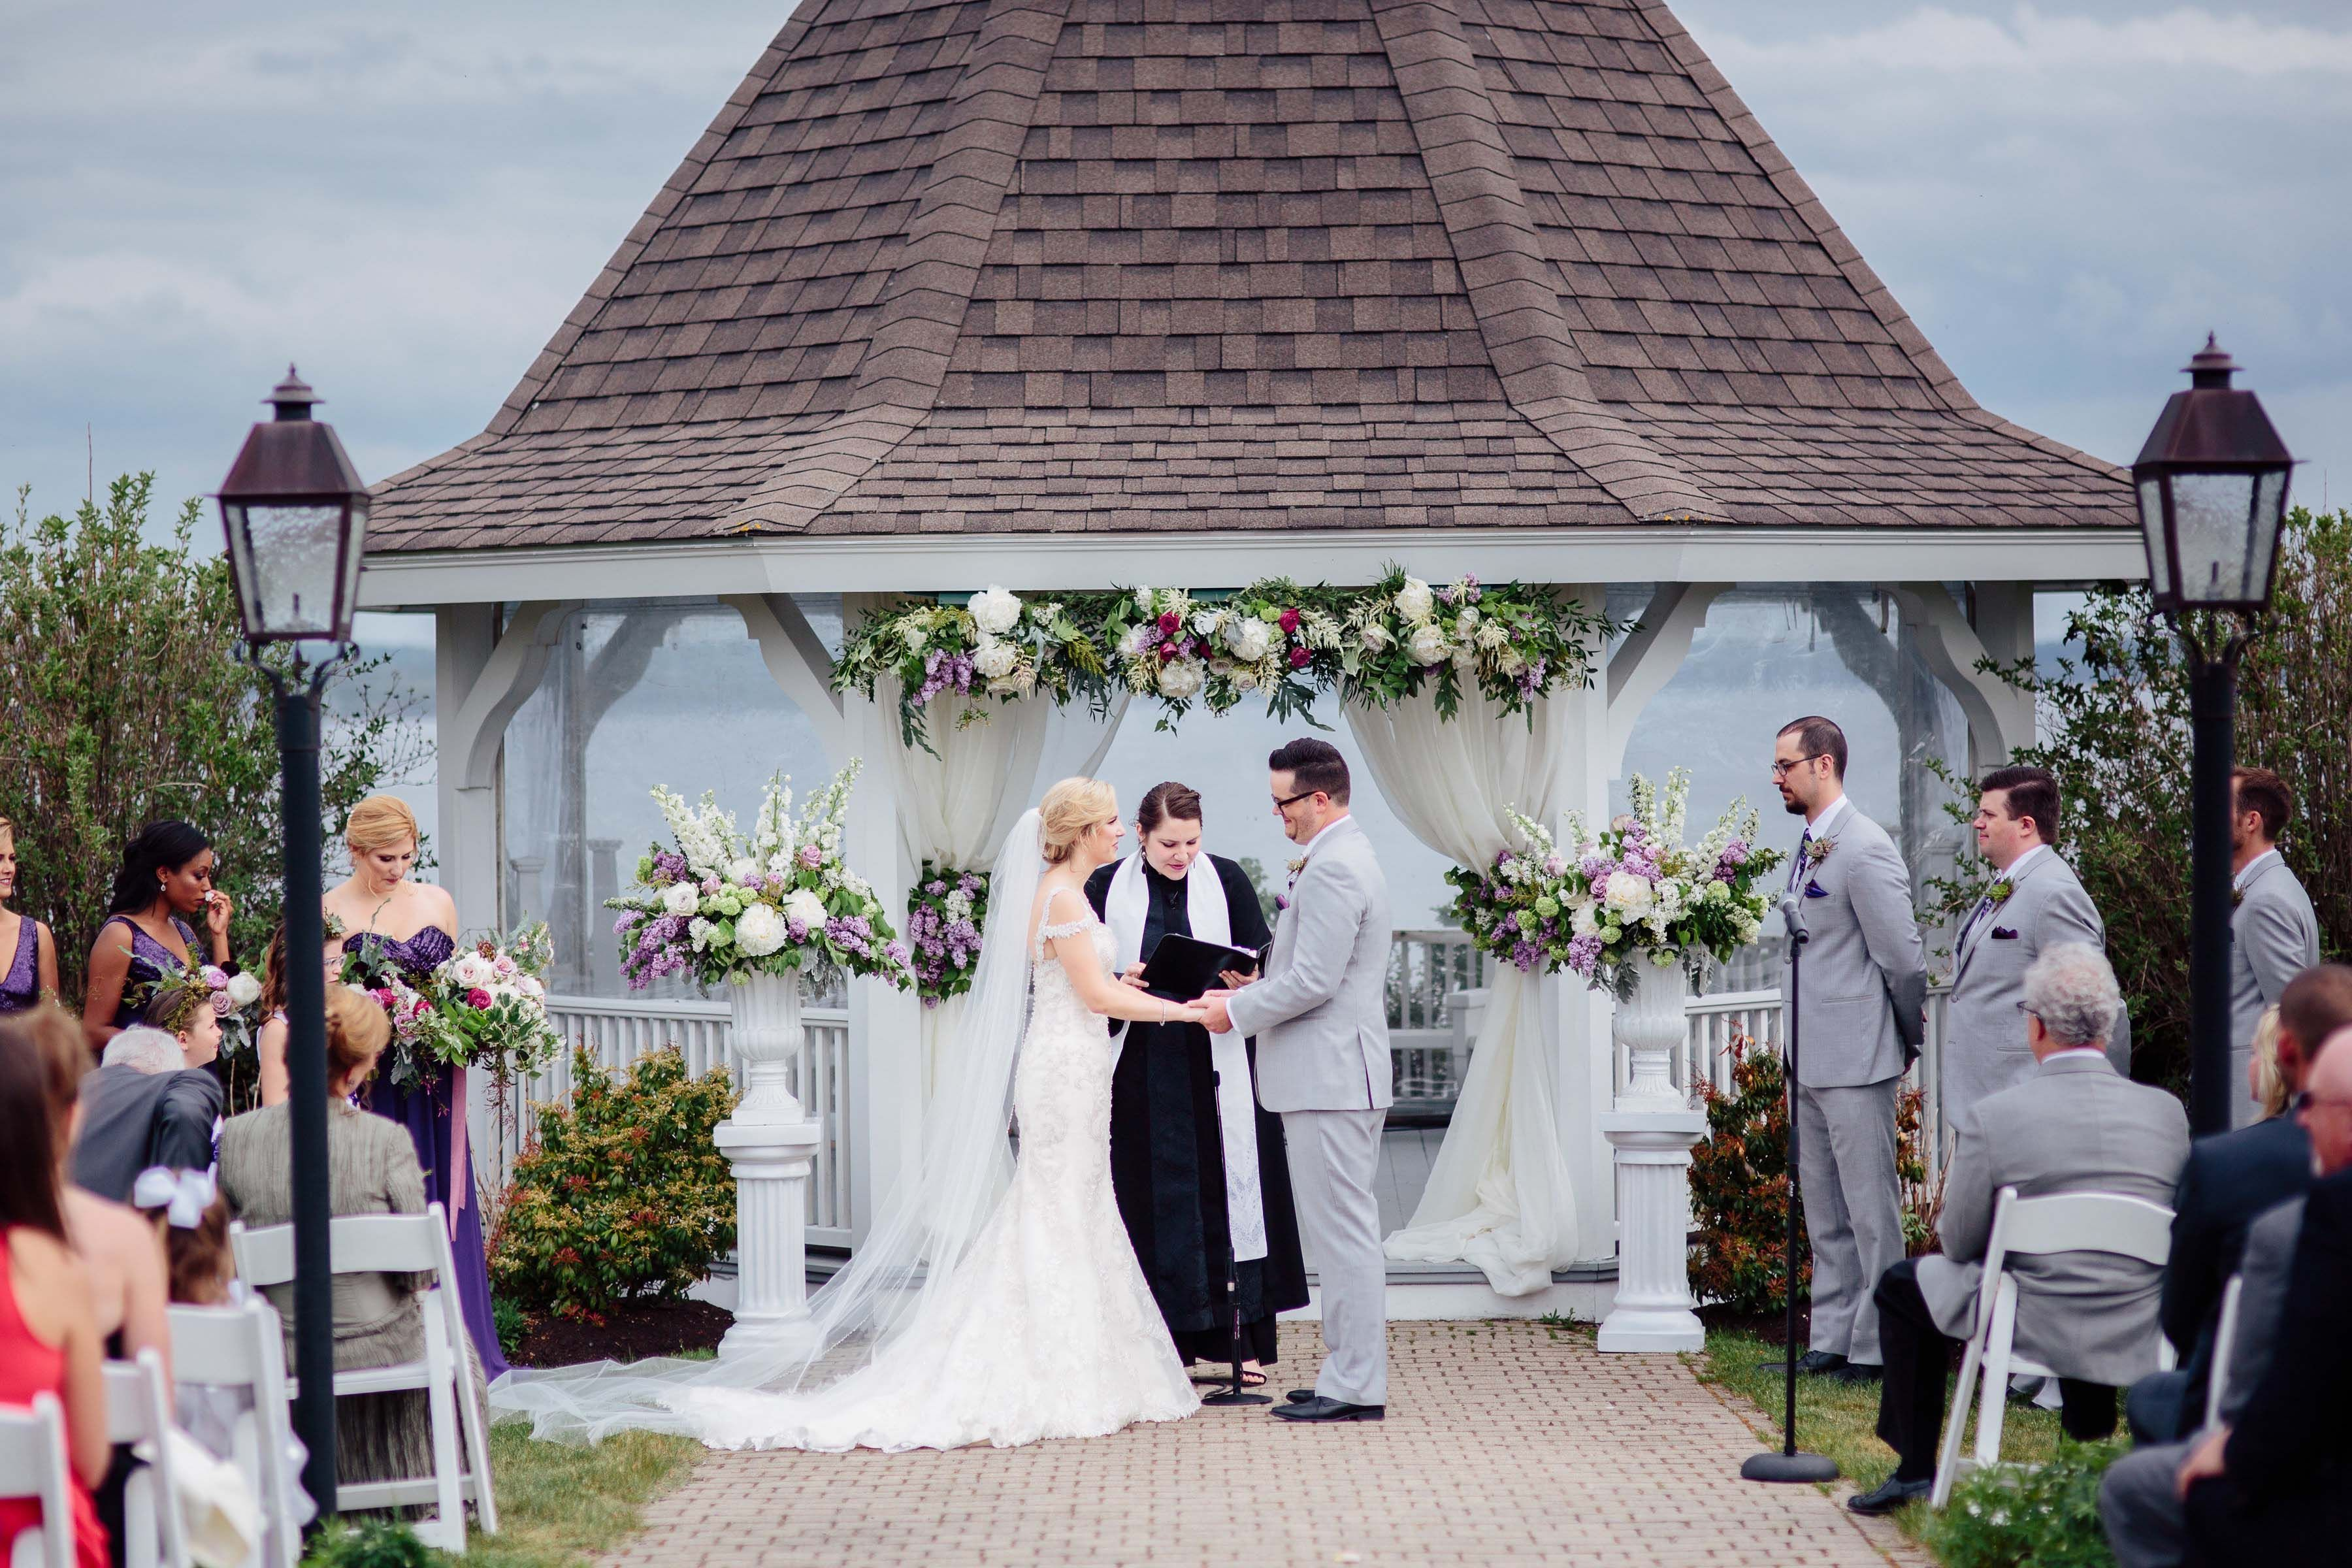 Destination Wedding Review.Real Review Stunning Venue Friendly Team French S Point